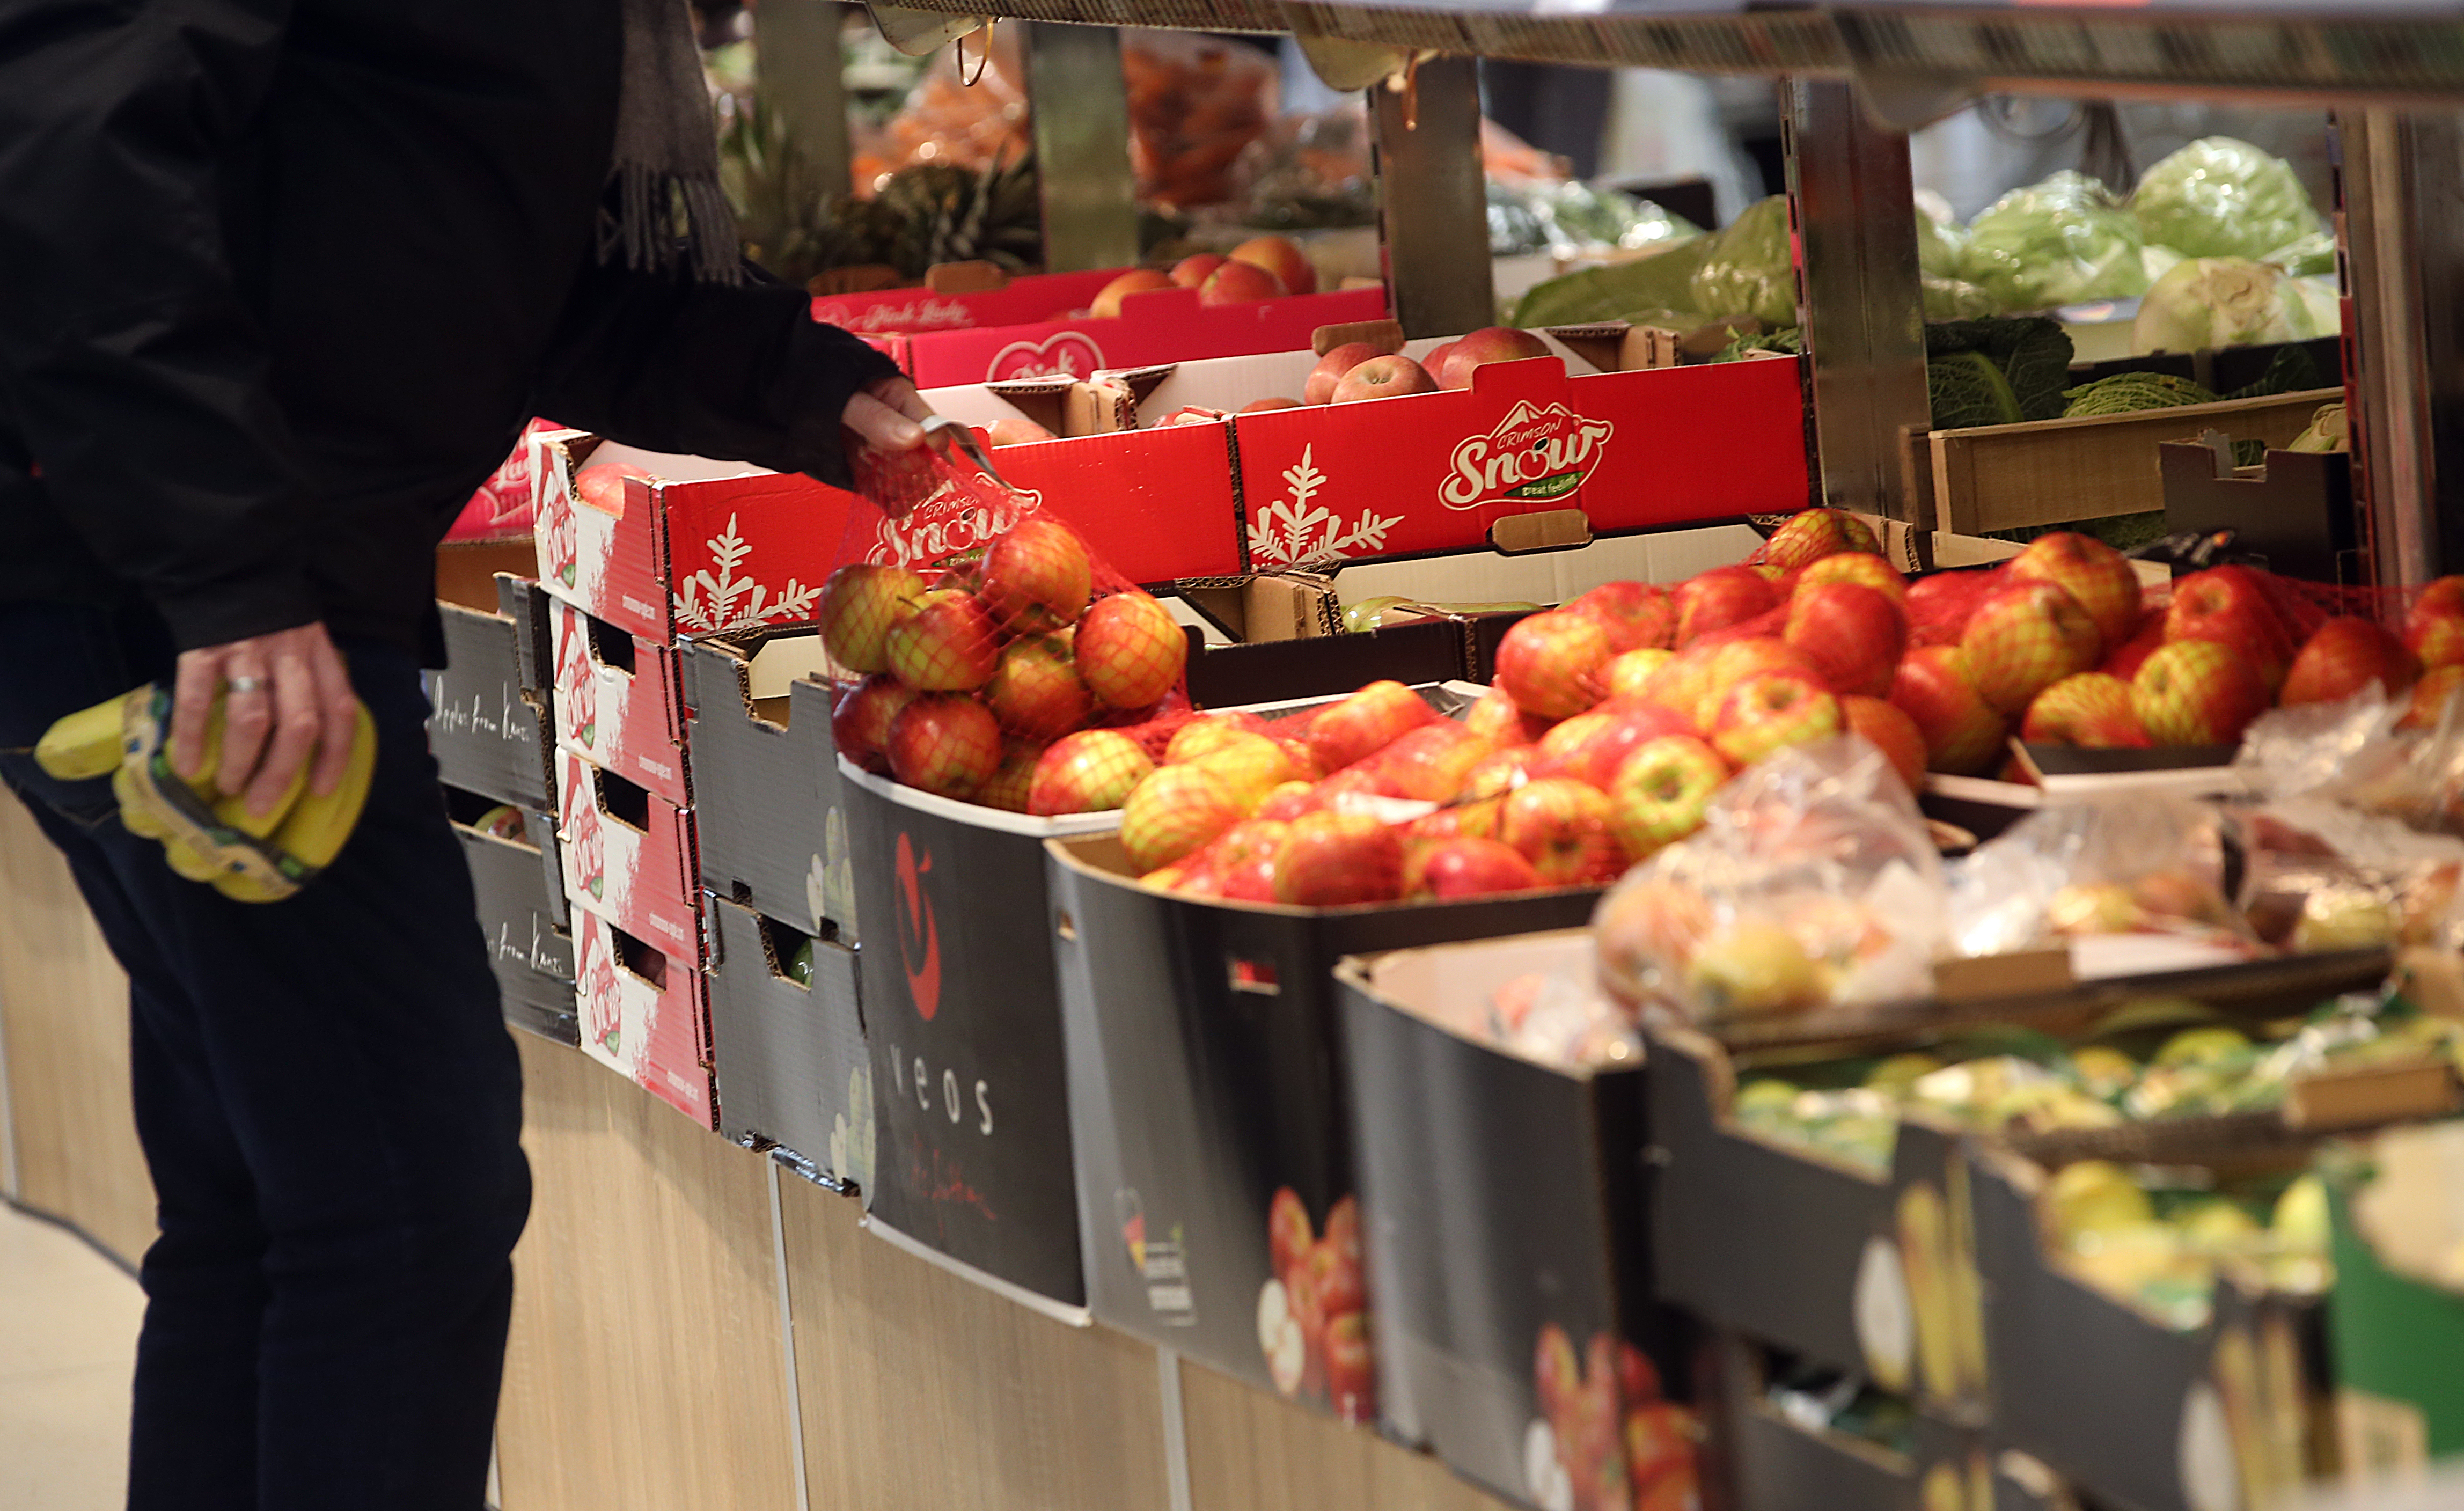 Sainsbury's is scrapping plastic bags for loose items such as fruit and veg. Credit: PA